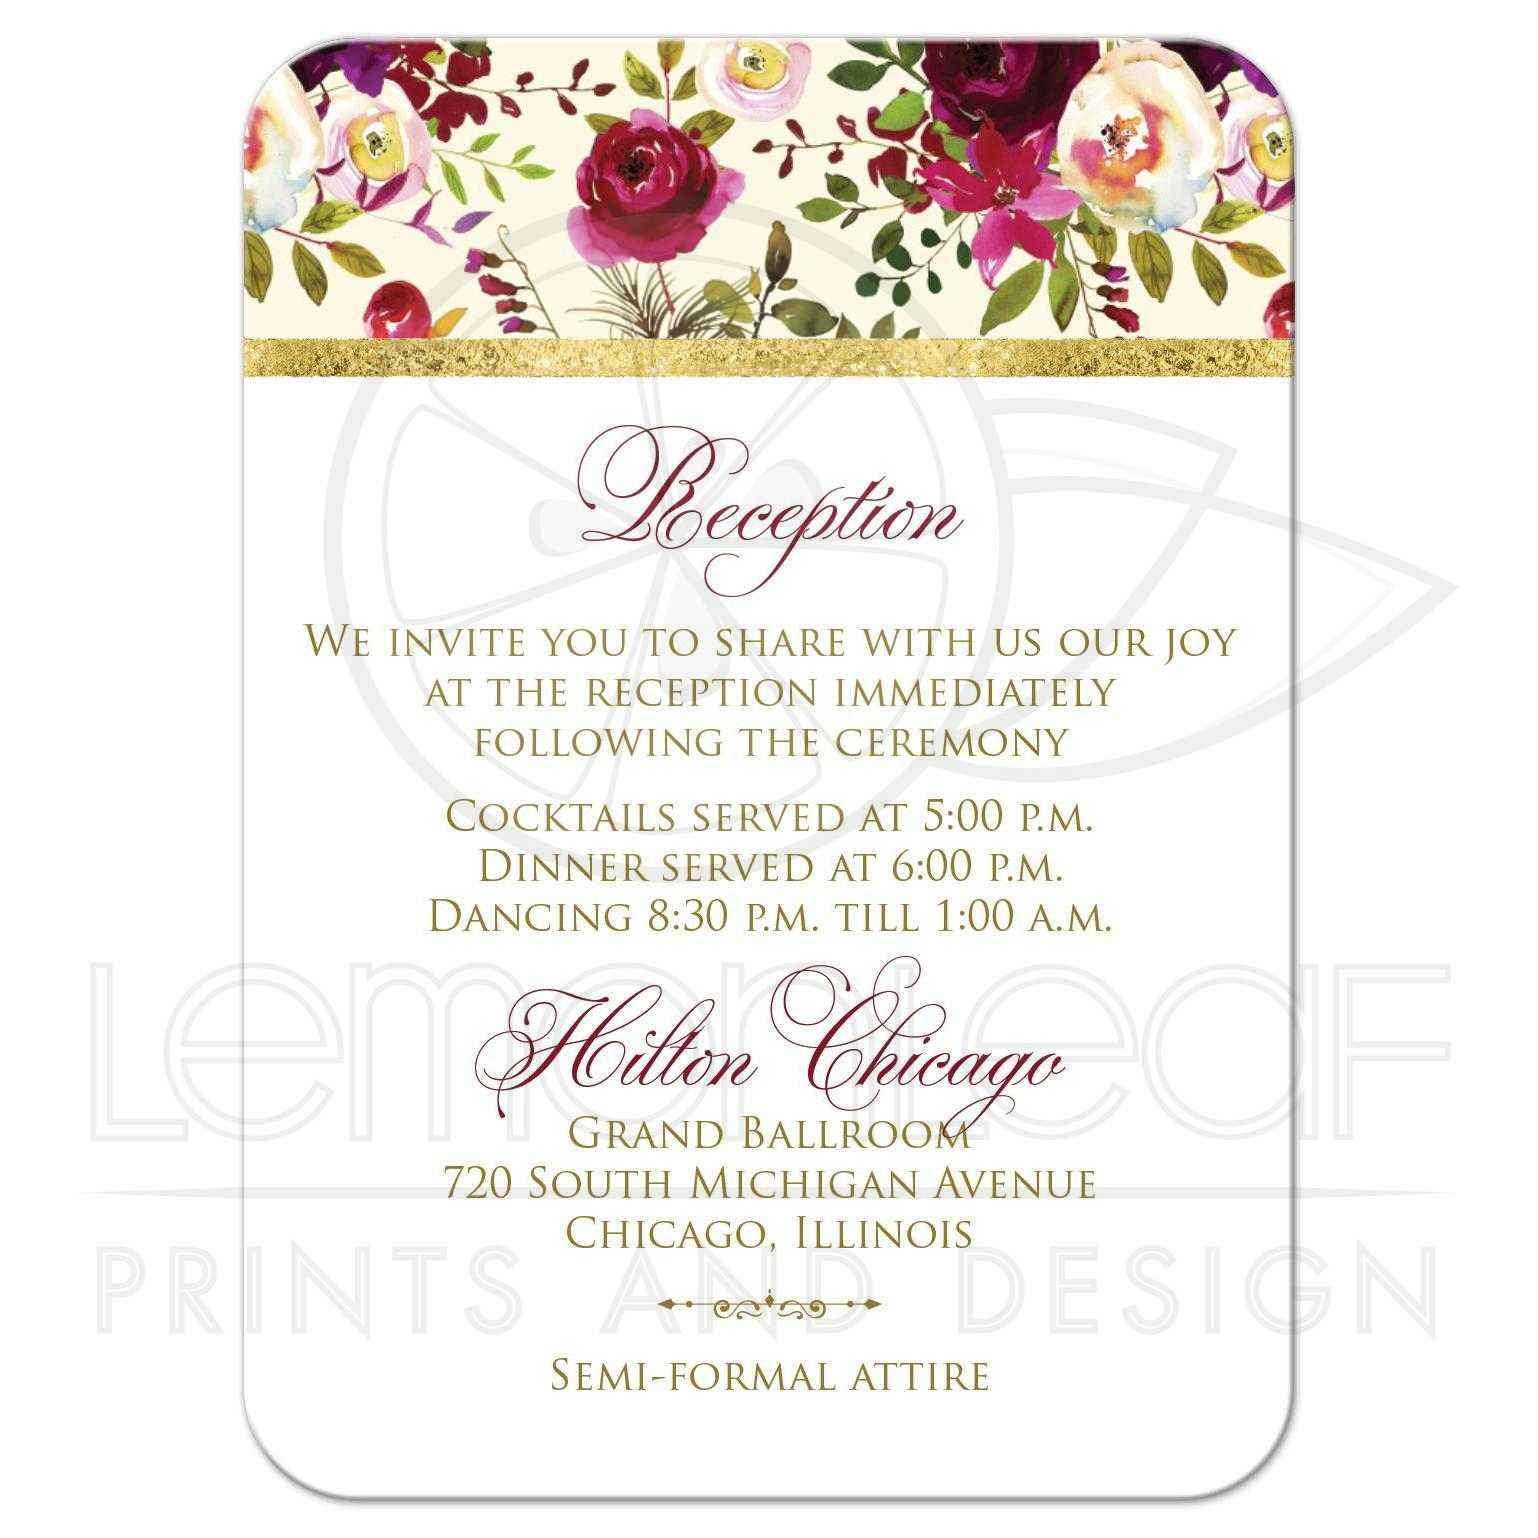 beautiful burgundy watercolor flowers wedding insert florals feathers scroll. Black Bedroom Furniture Sets. Home Design Ideas